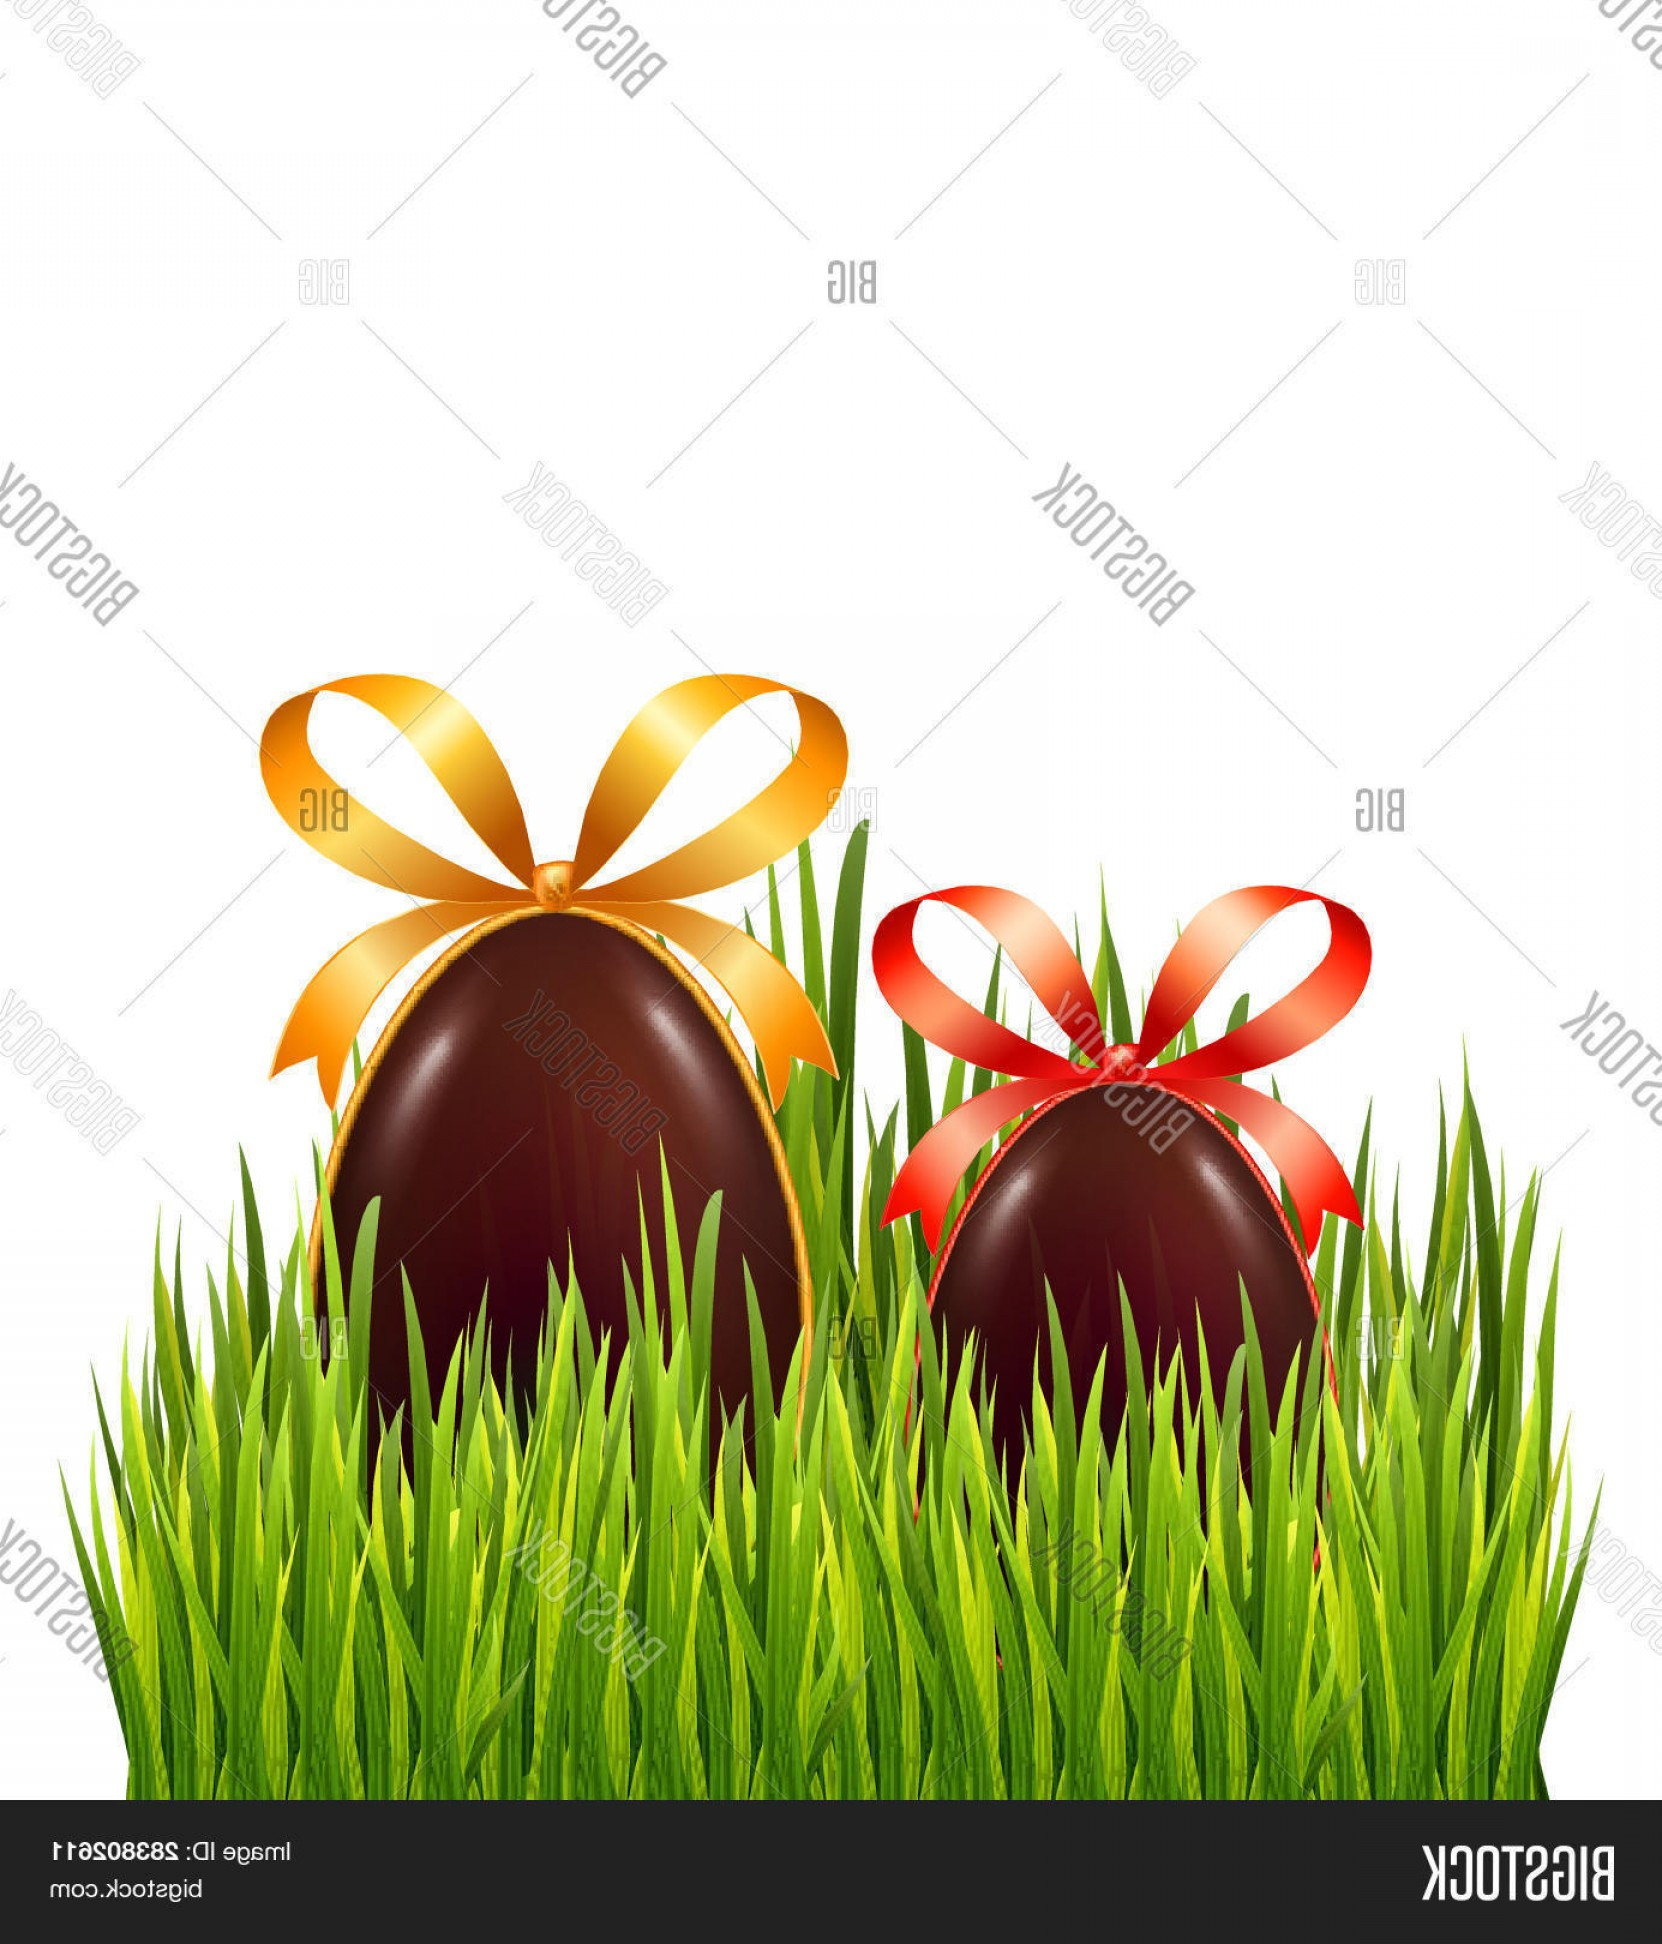 Chocolate Vector Plant: Stock Vector Chocolate Easter Eggs With Bow And Ribbon Isolated On White Background With Fresh Green Grass Banne